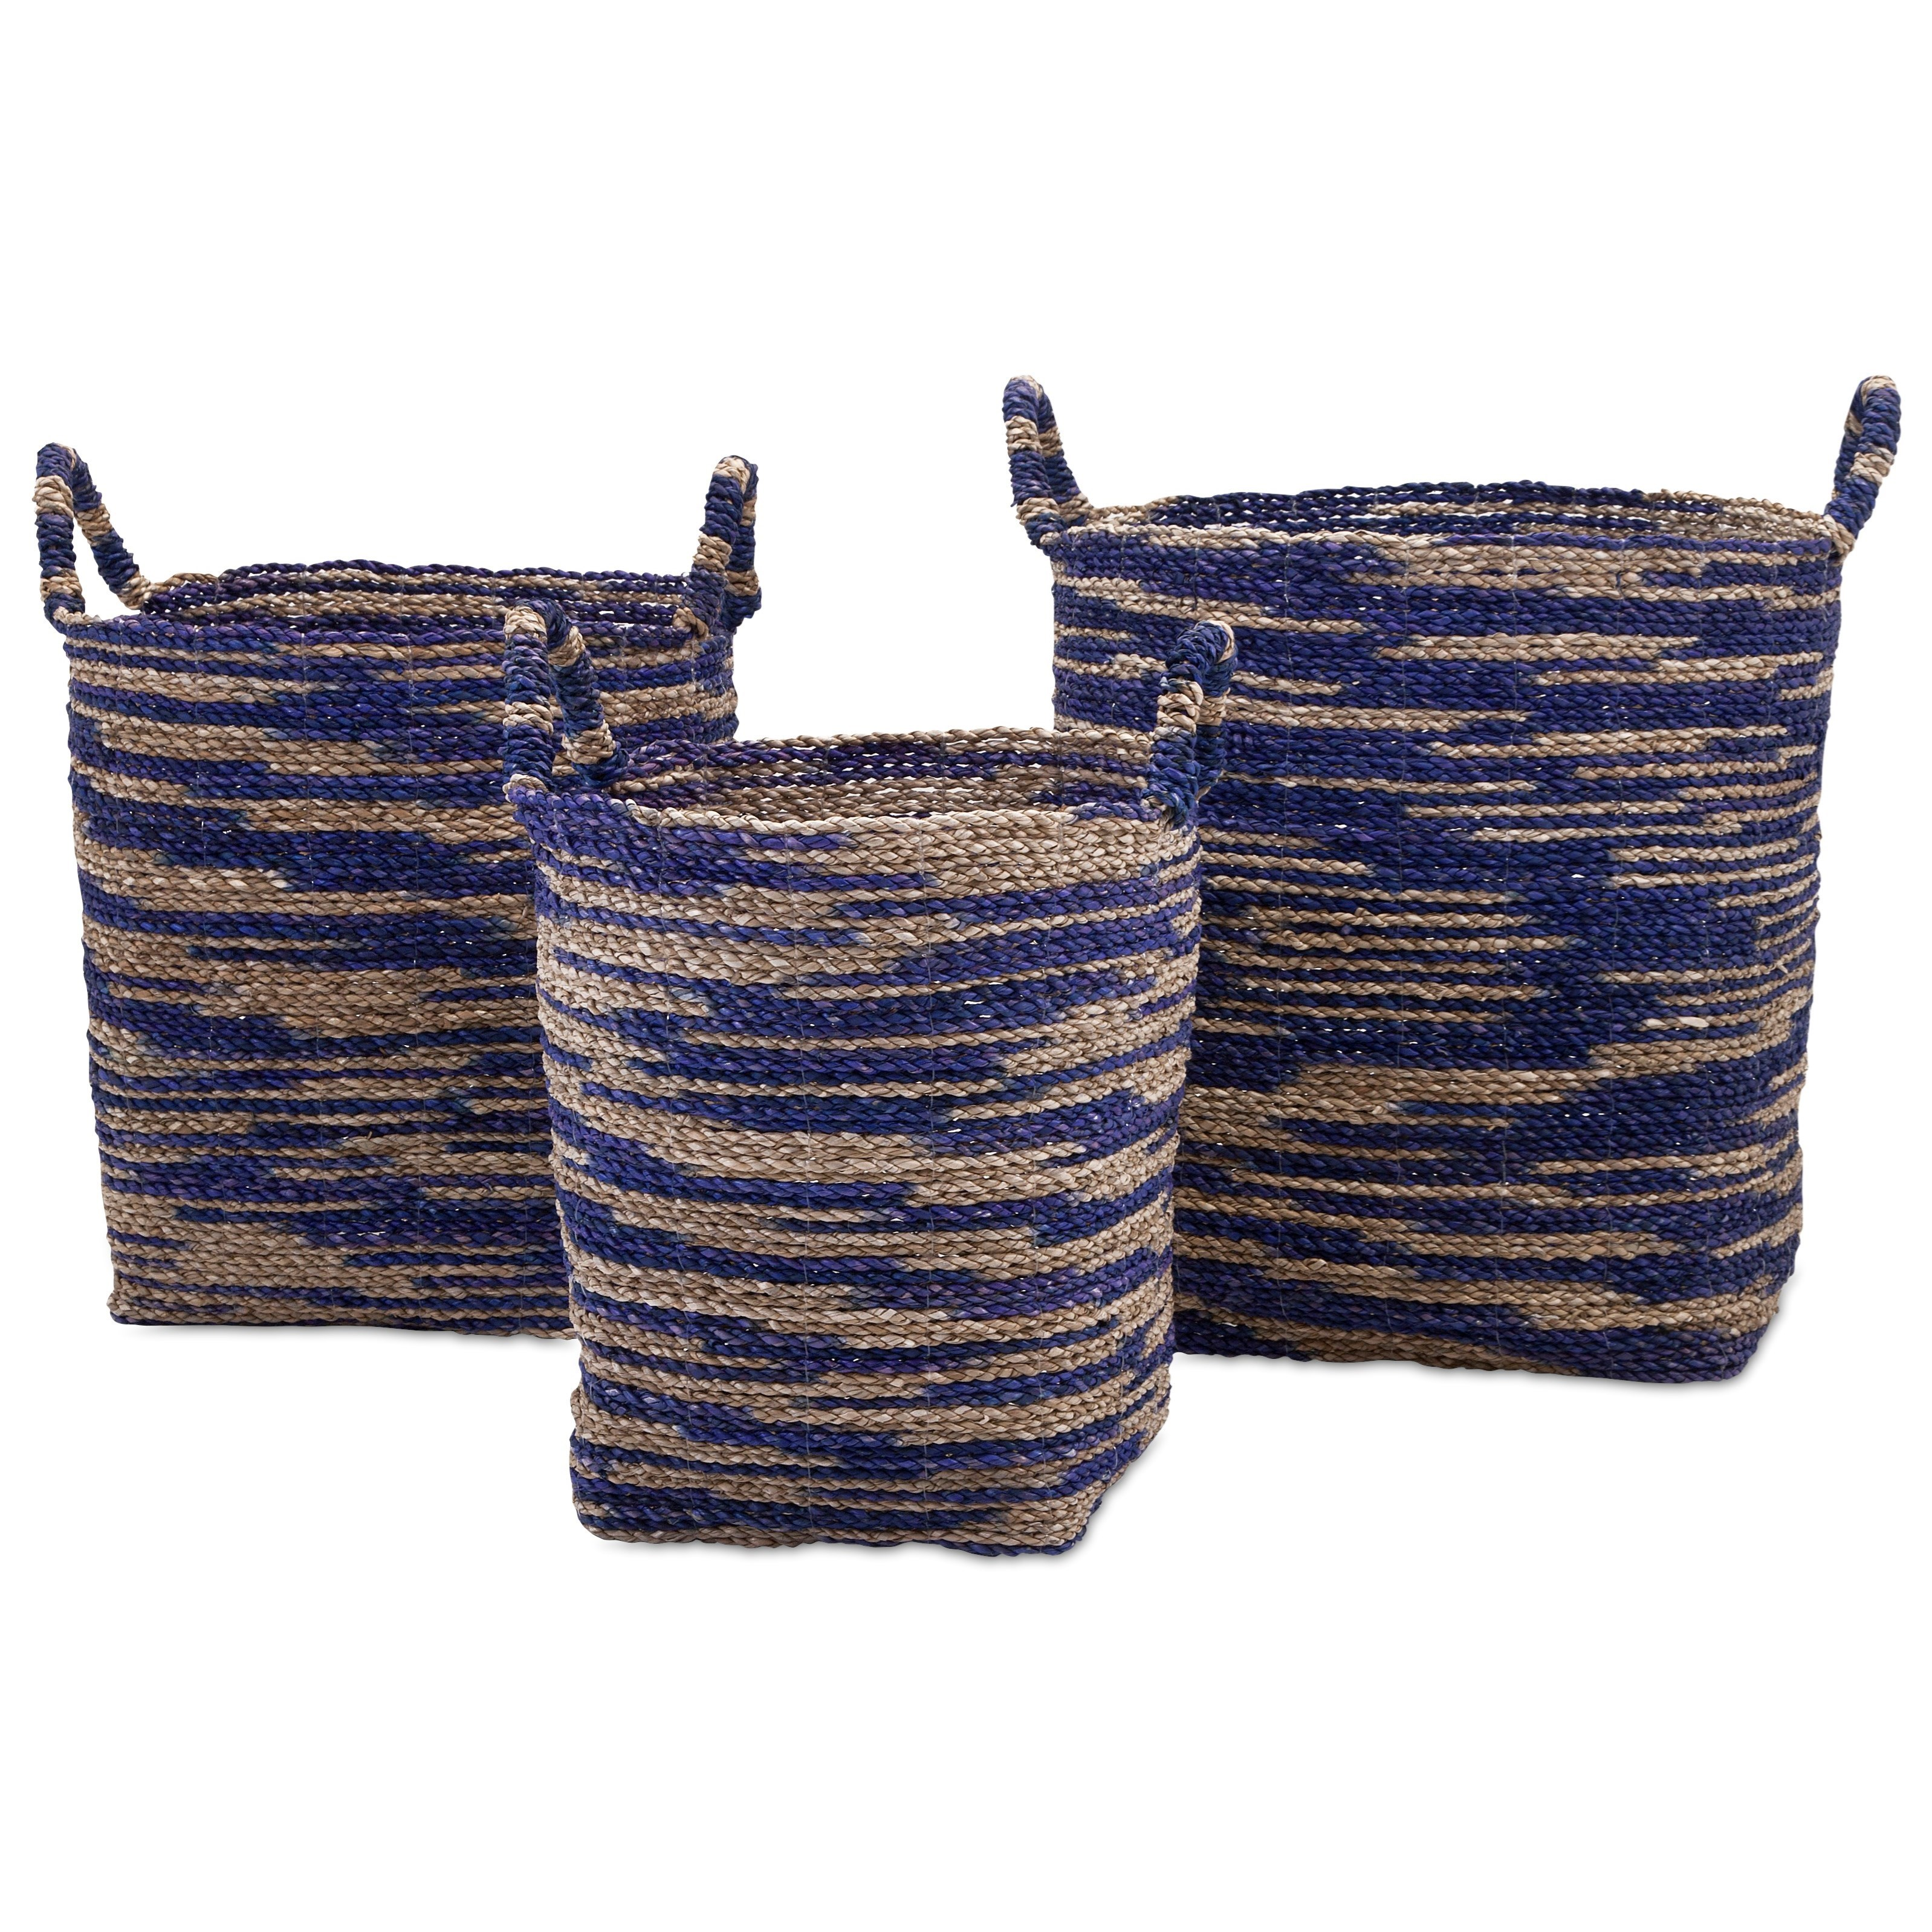 Baskets Cyprus Seagrass Baskets - Set of 3 by IMAX Worldwide Home at Alison Craig Home Furnishings